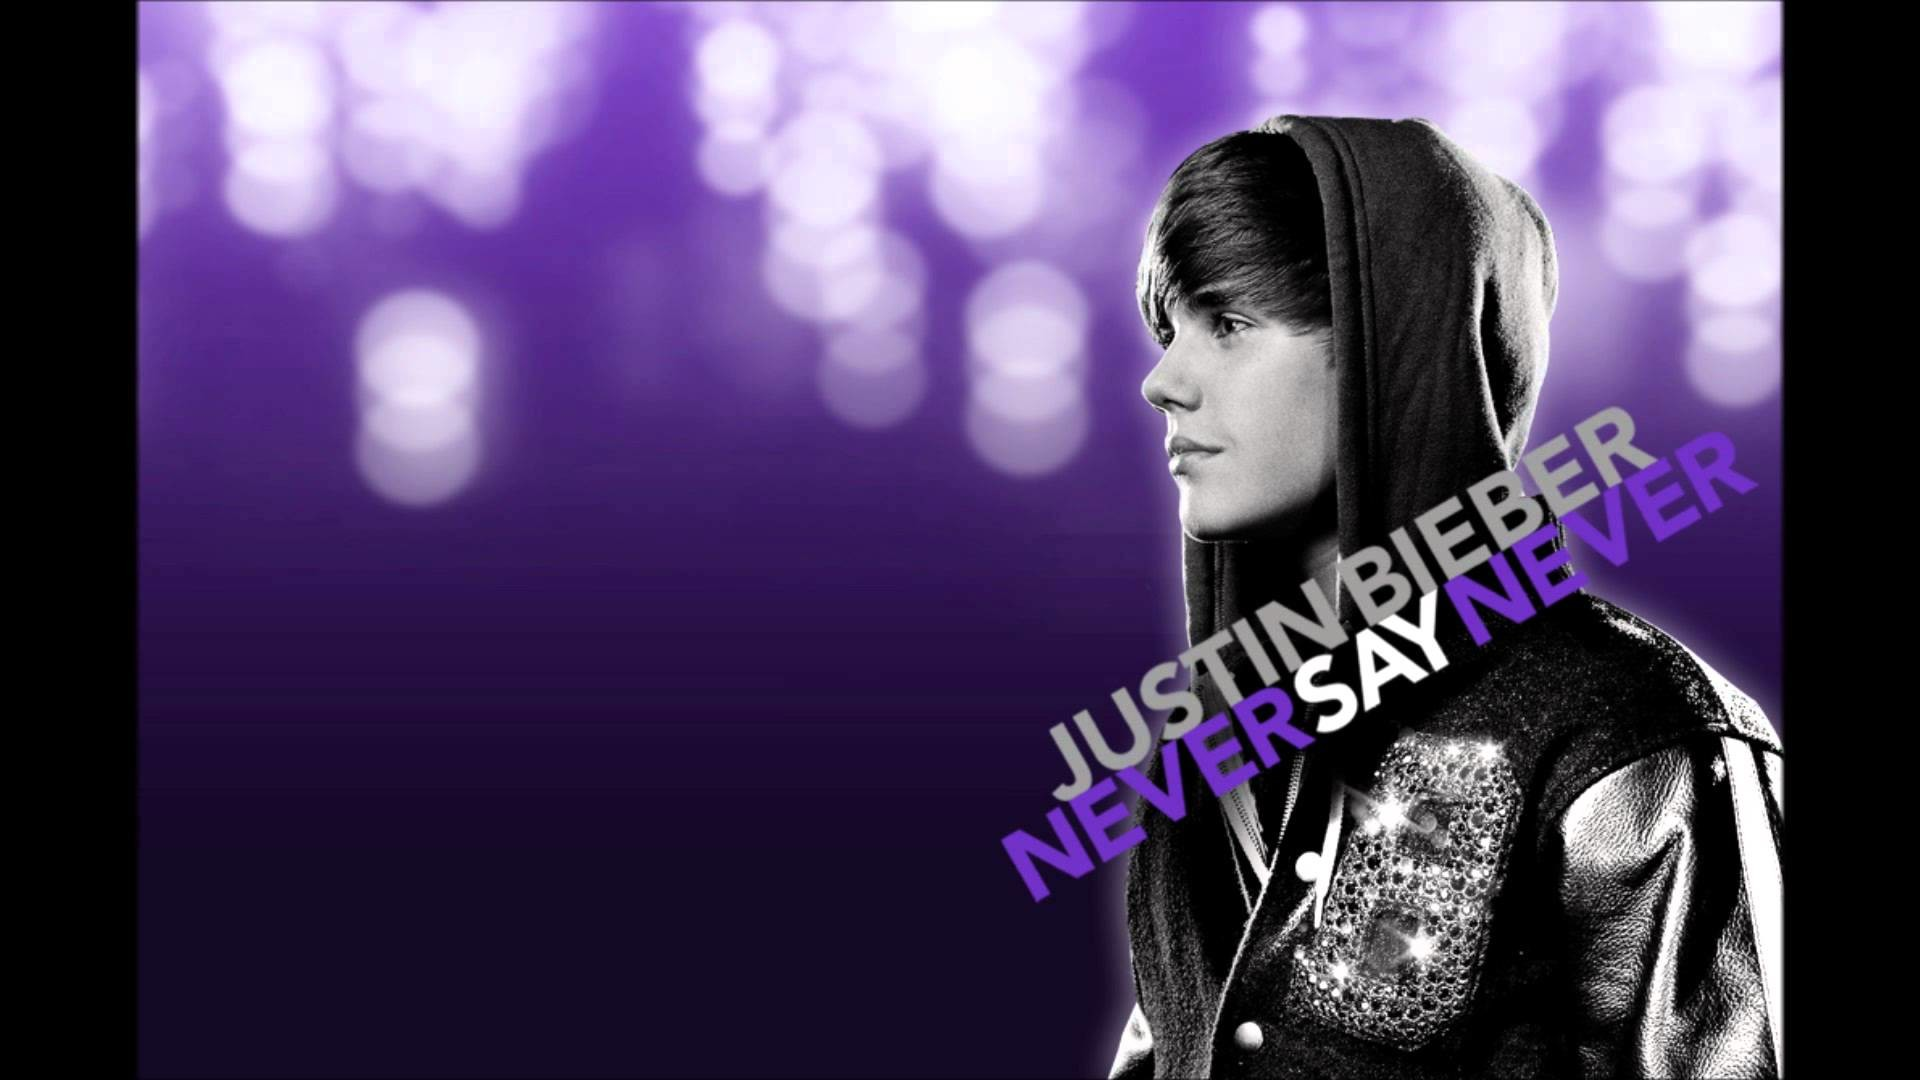 1920x1080 Justin bieber Ft Chris brown next to you Speed up Hope you like it - YouTube